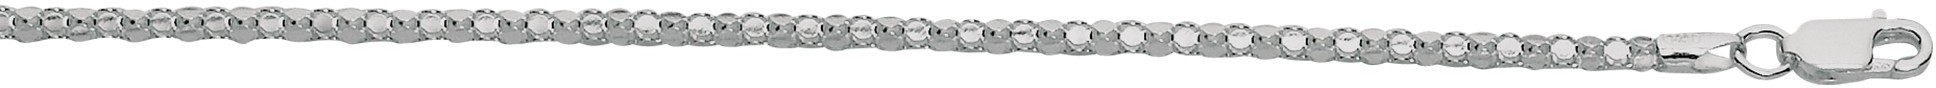 "16"" 2.2mm (0.09"") Rhodium Plated Polished Diamond Cut 925 Sterling Silver Popcorn Chain w/ Lobster Clasp"